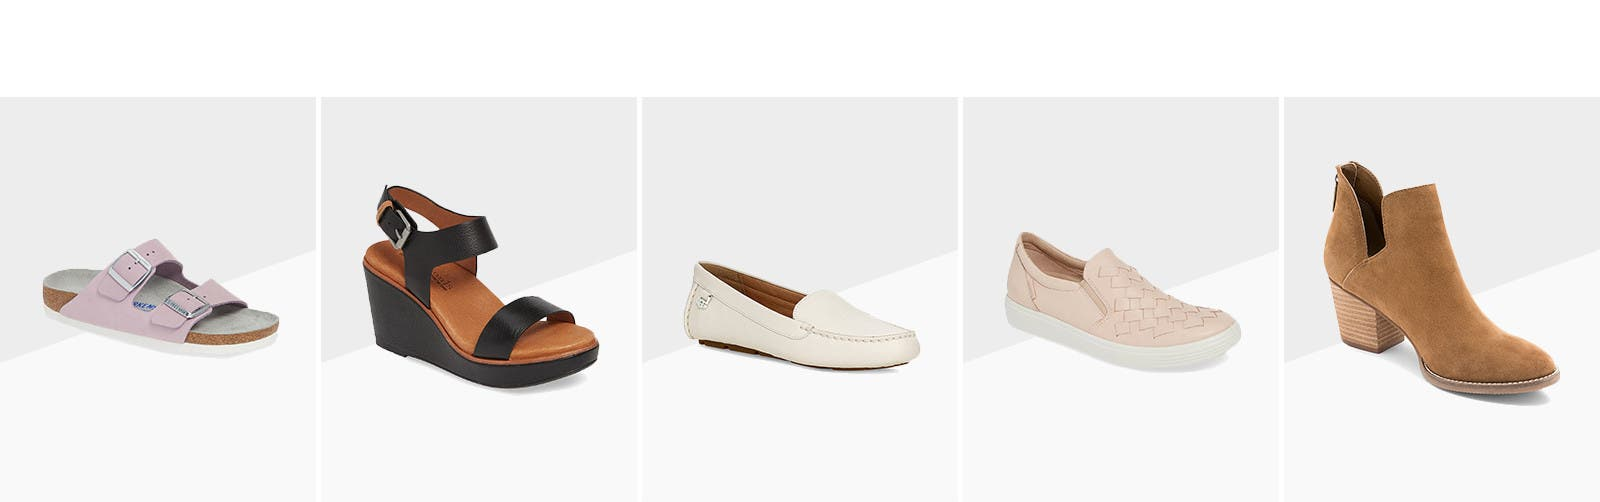 Comfortable shoes for every look.